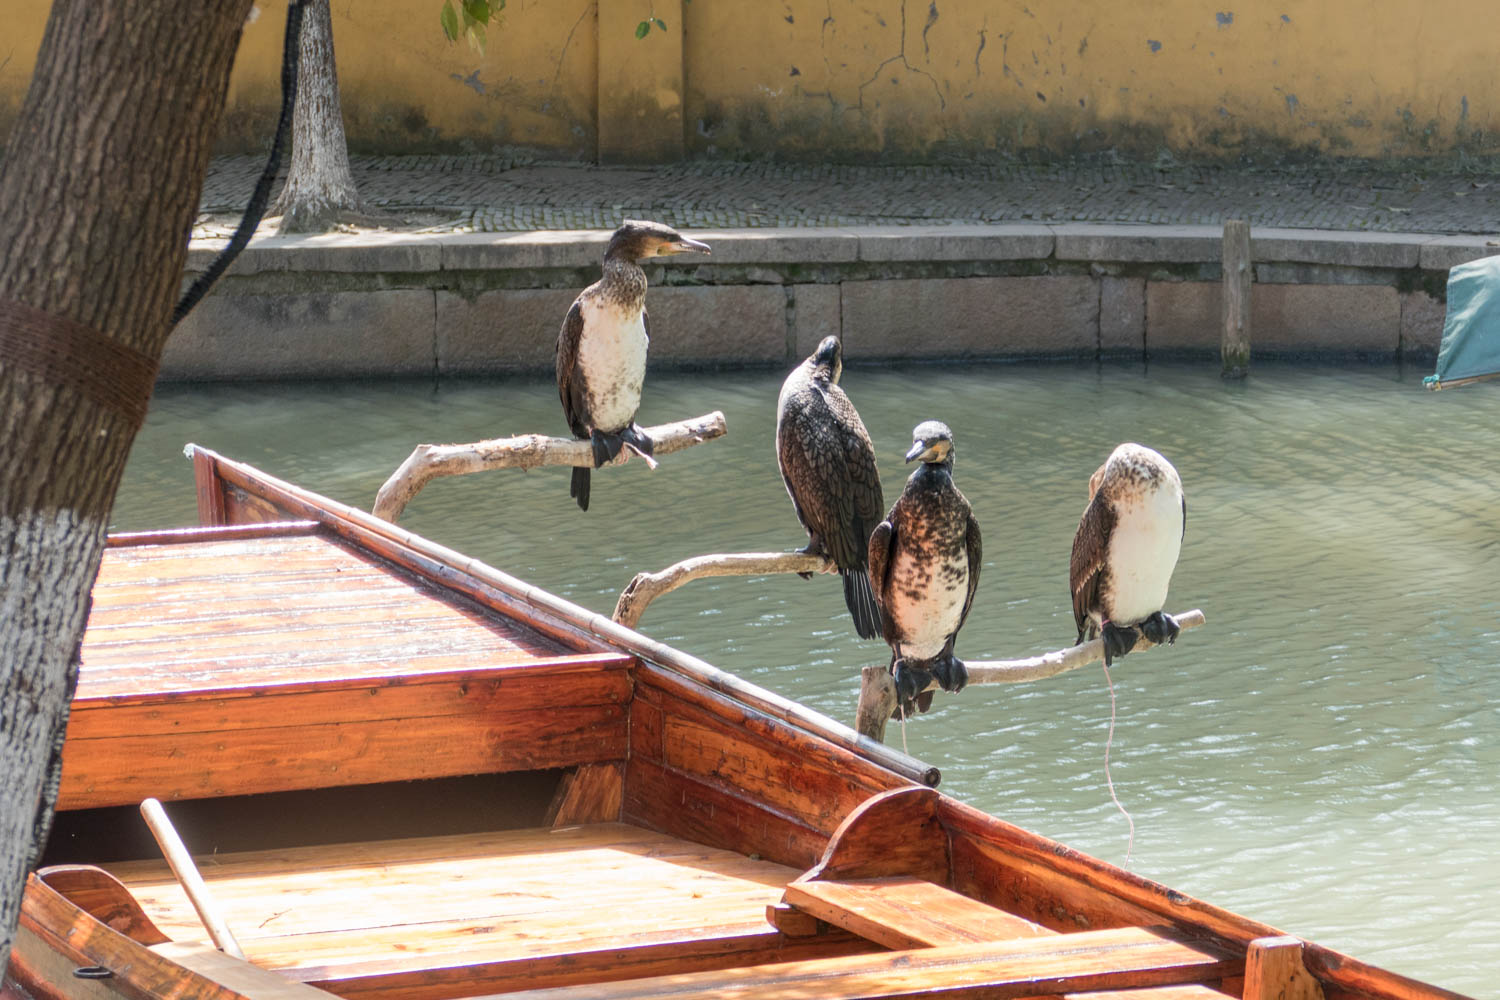 Cormorants waiting for action. When I took the picture a lady came up and said I wasn't allowed to do that unless I paid a fee.